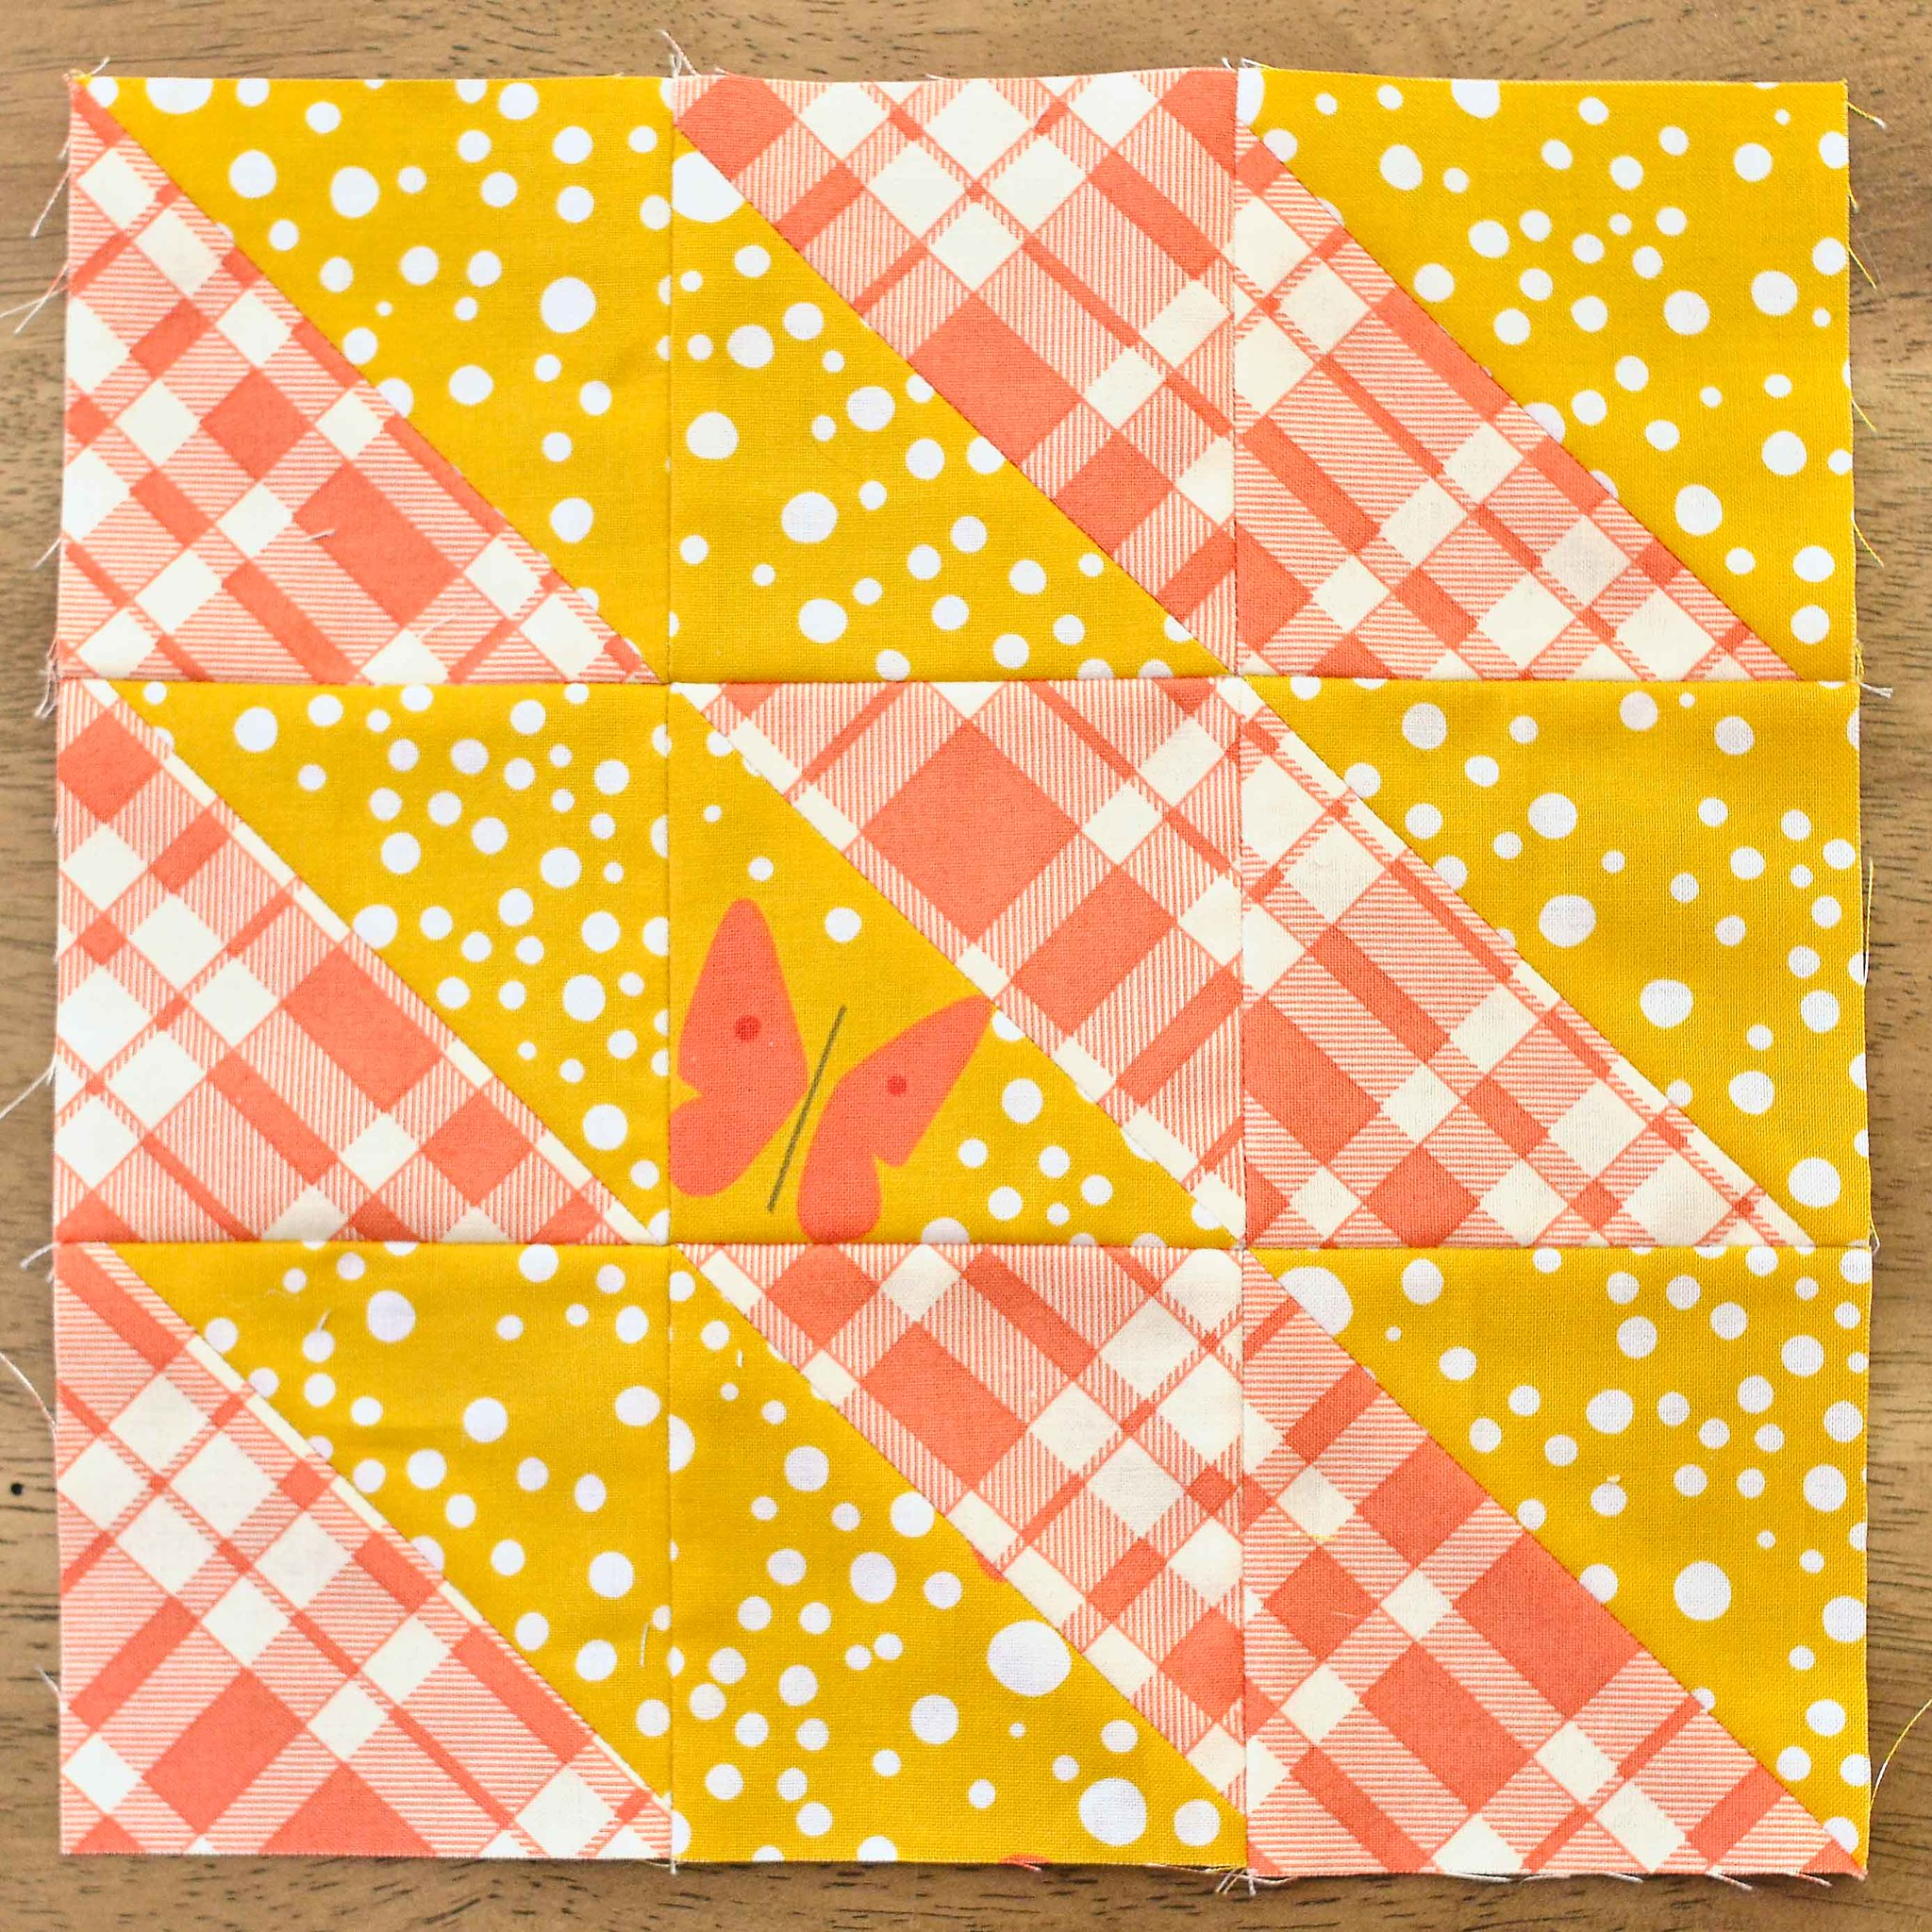 The Fussy Cut Sampler QAL Block 24